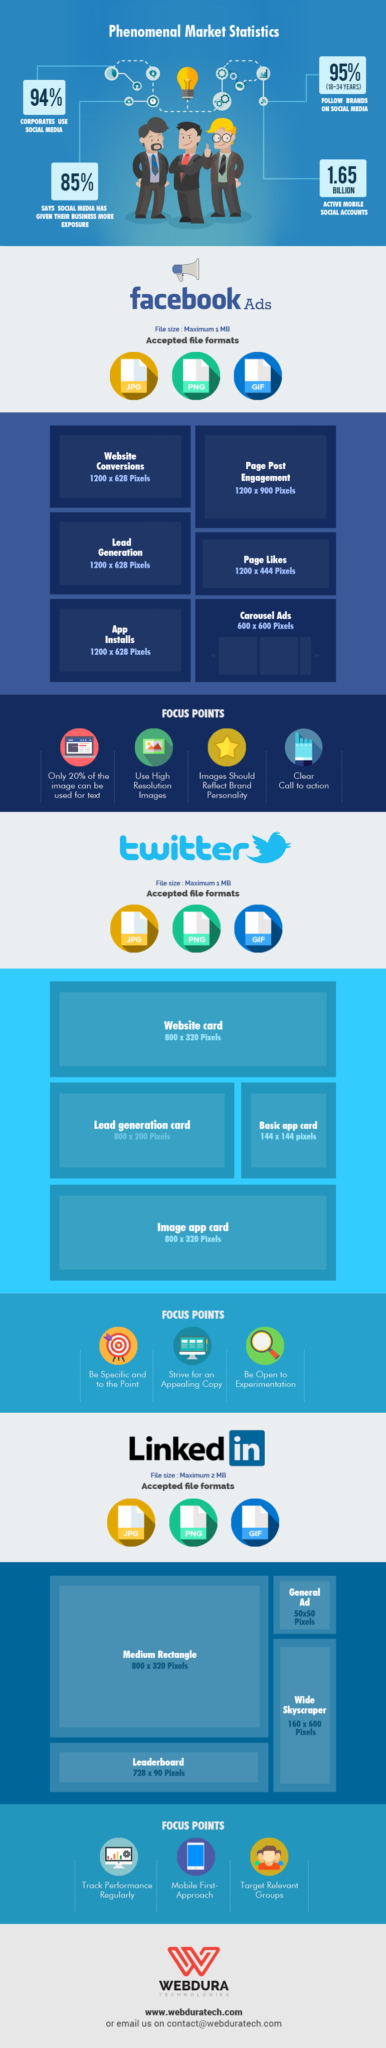 twitter, linkedin and facebook ad image size